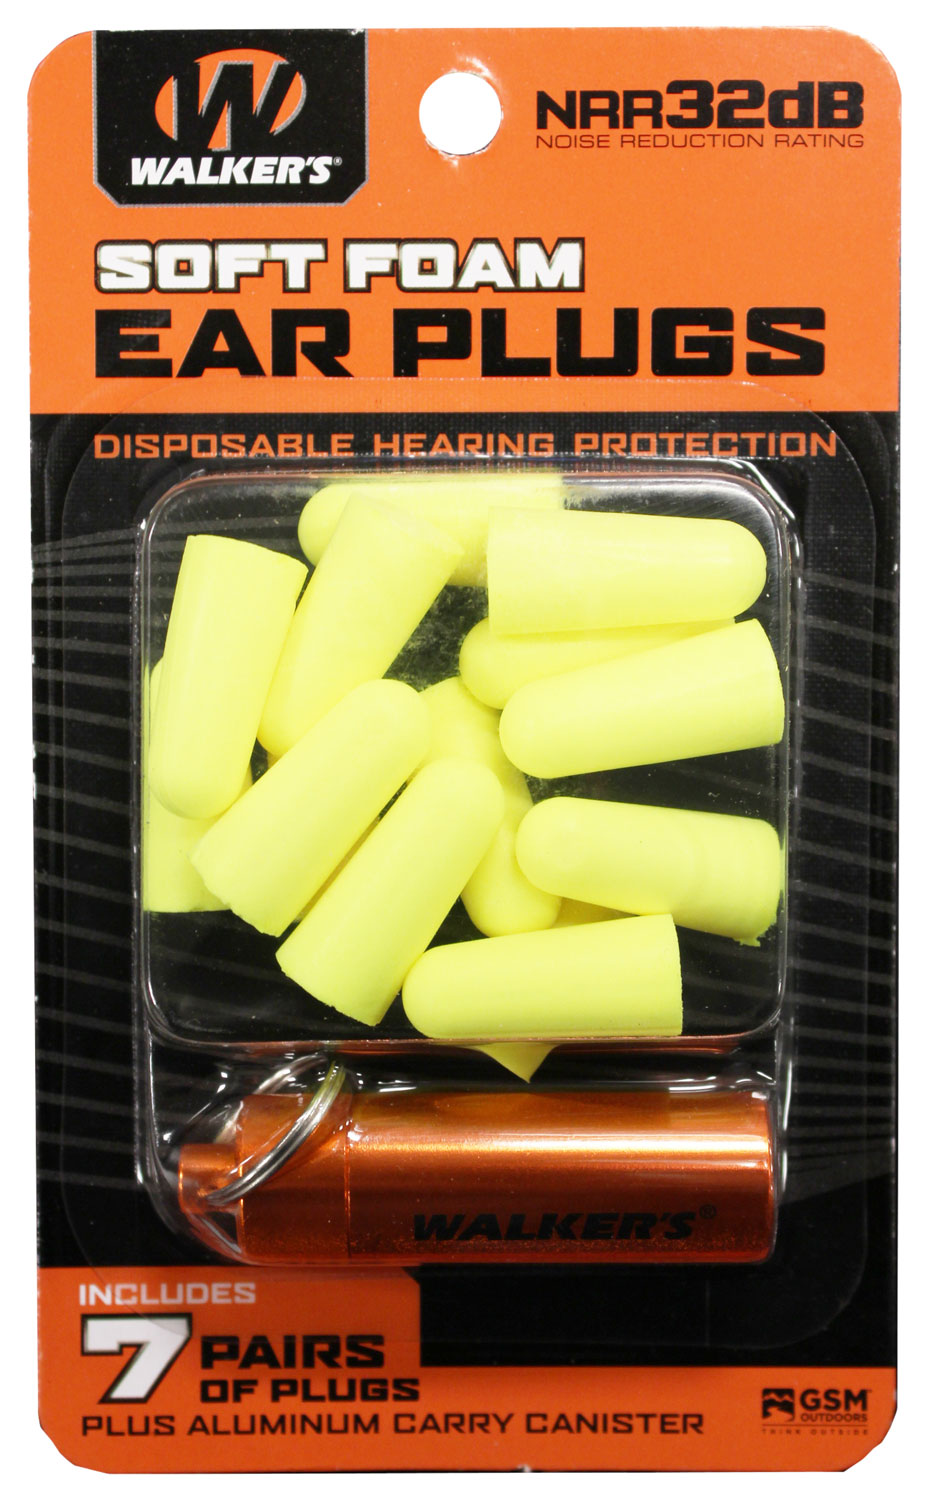 WALKERS EAR PLUGS SOFT FOAM 32dB 7-PAIR BLUE W/CARRY CASE